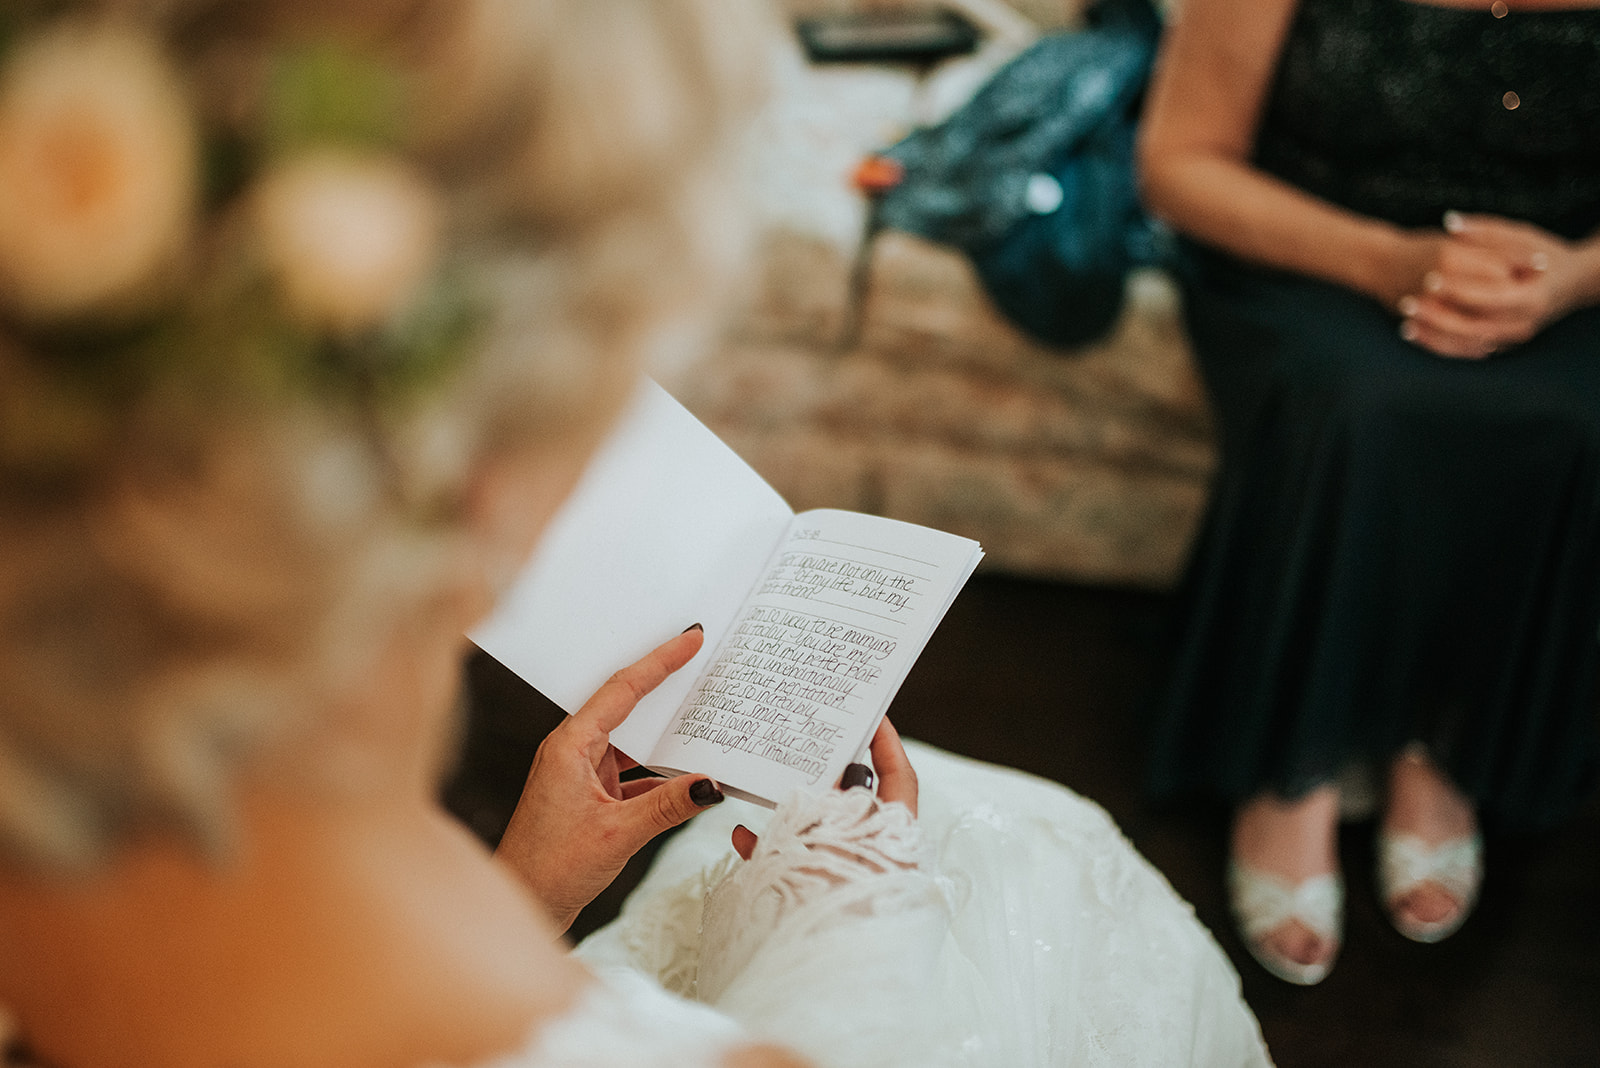 overthevineswisconsinwedding_0392.jpg